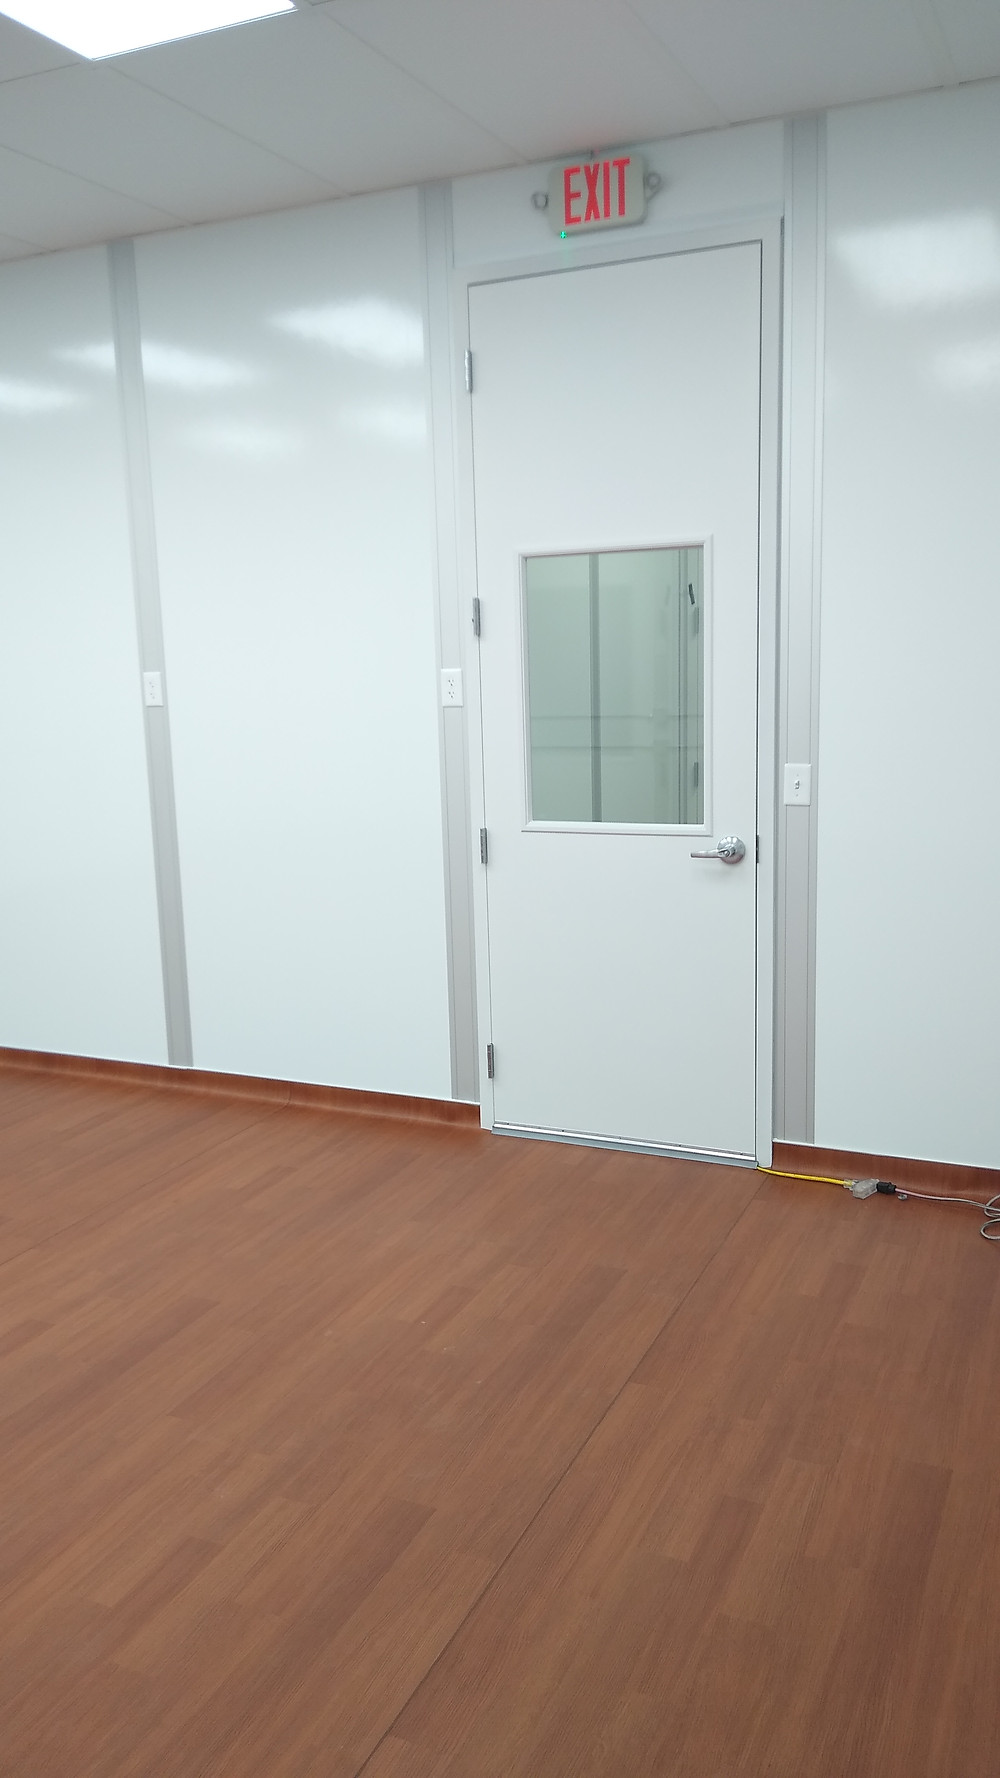 Applied Composites - Completed Projects - Exit Door